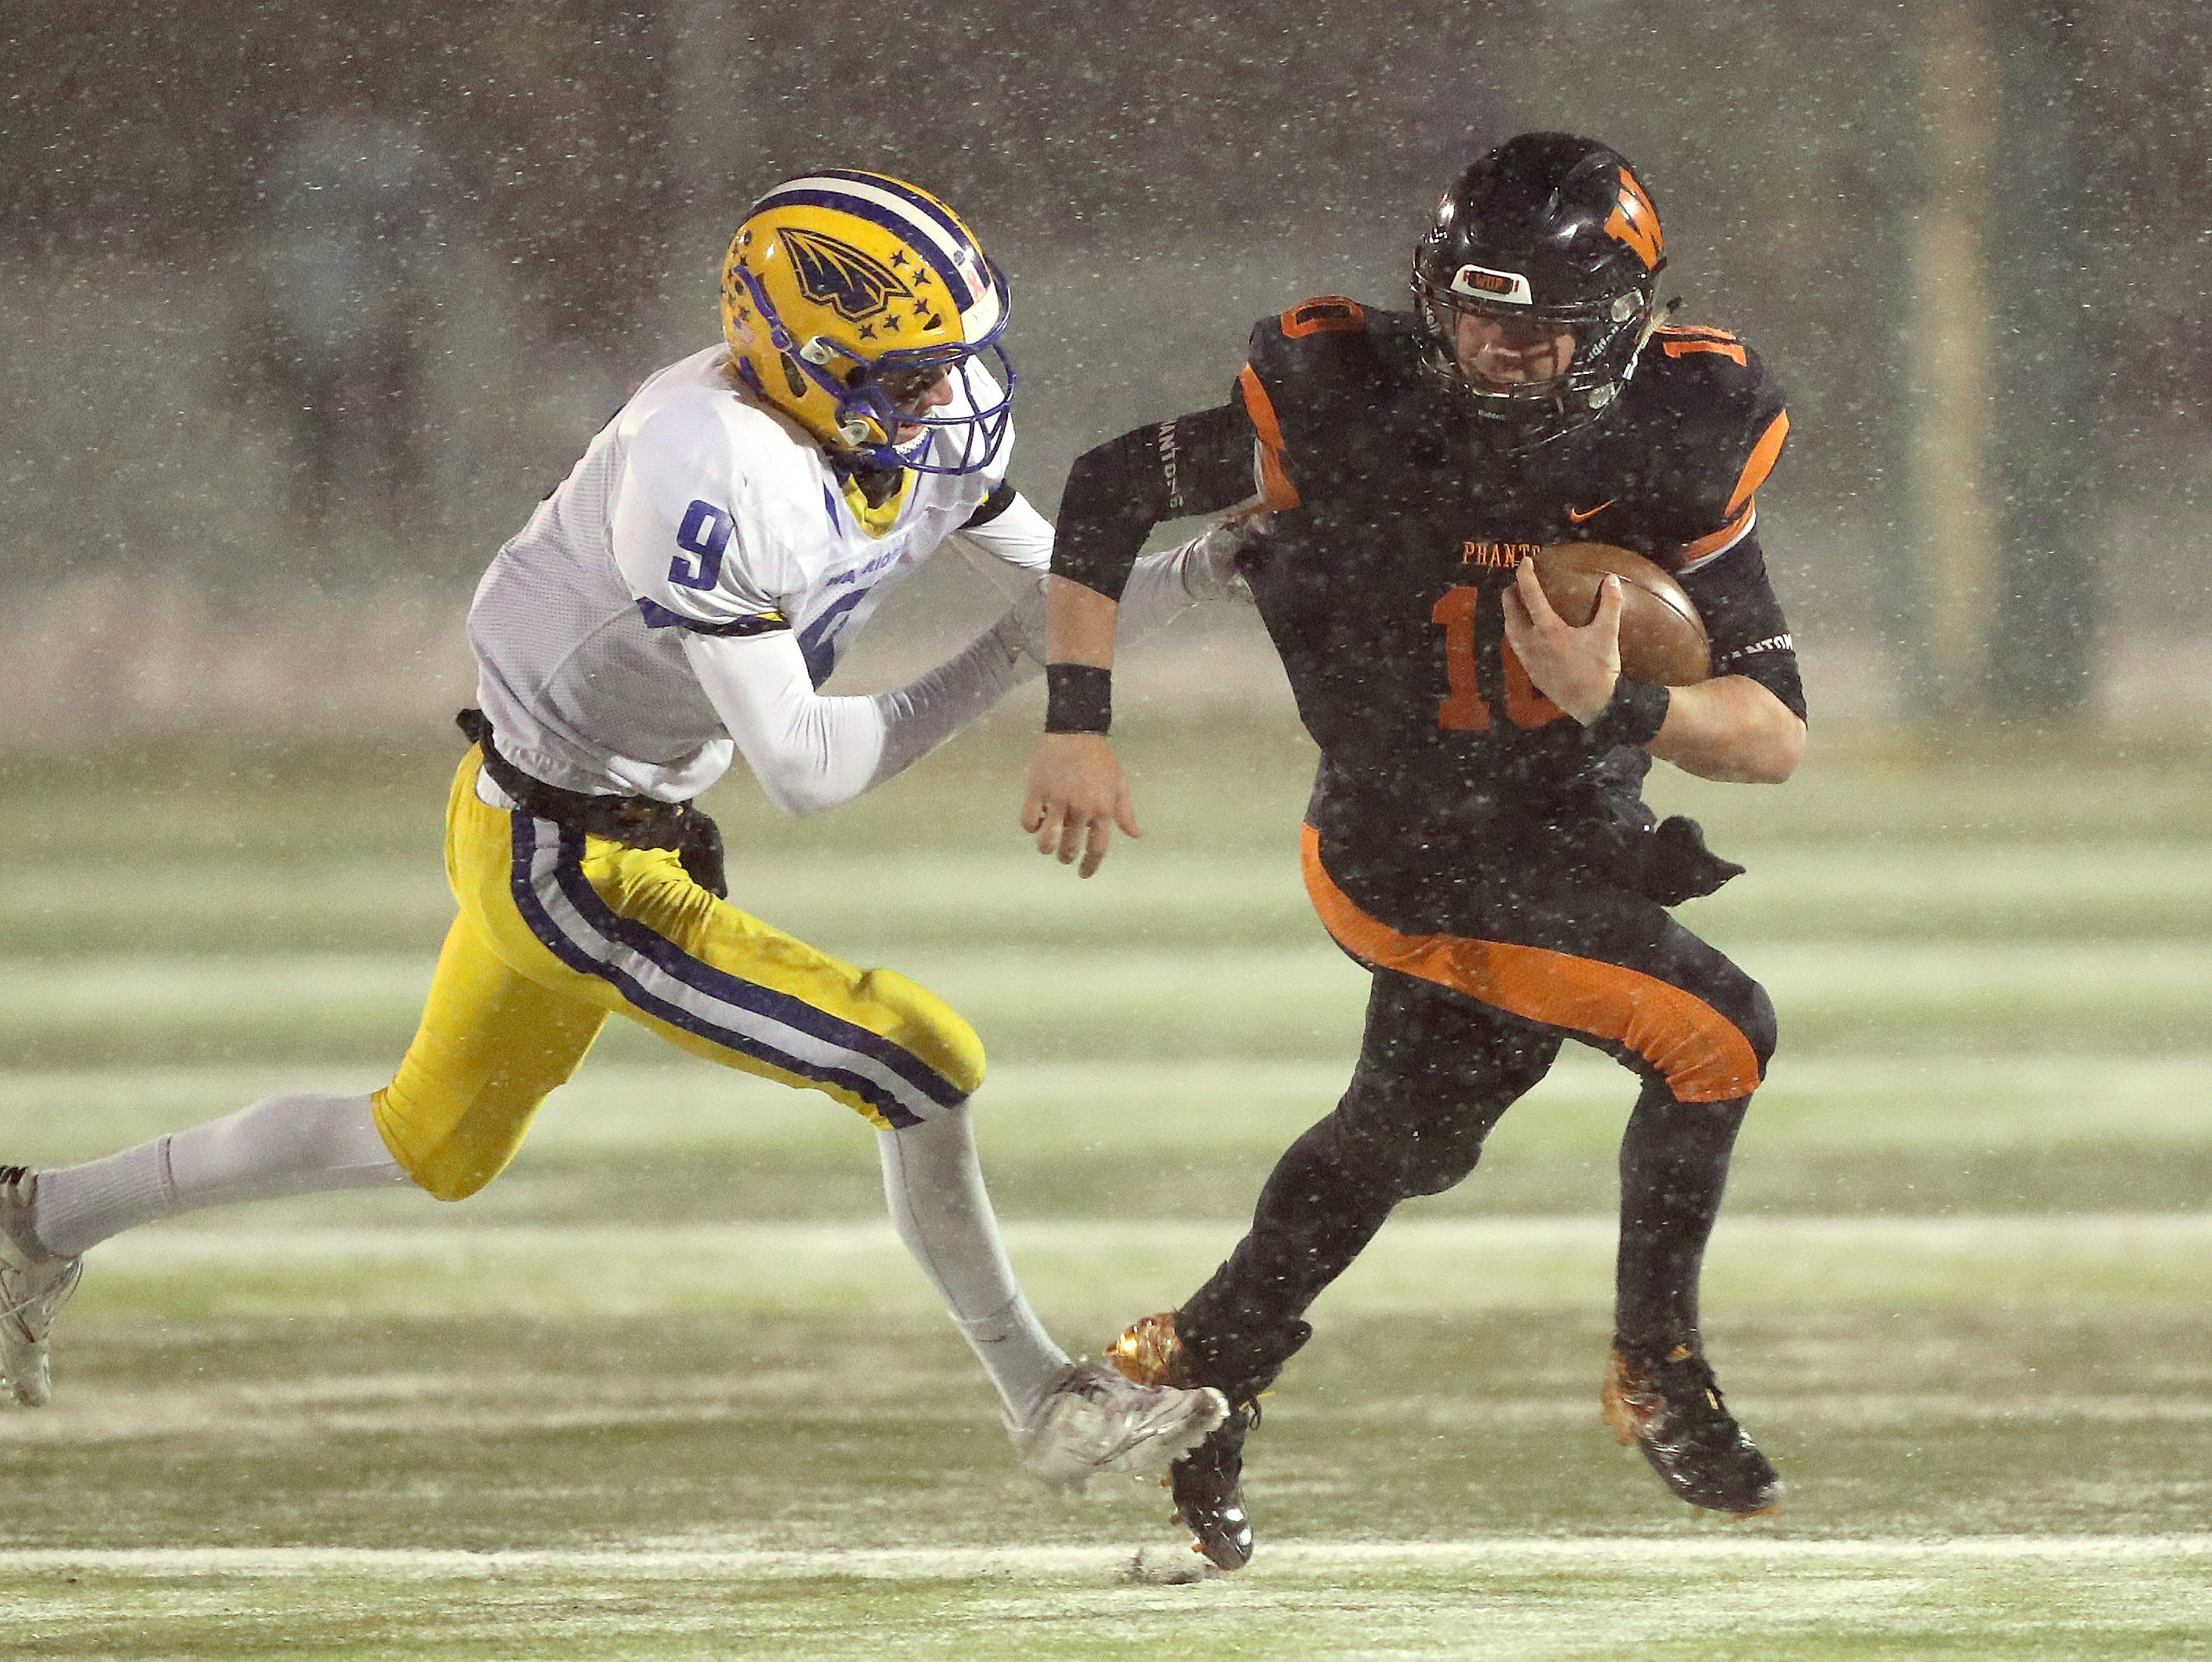 West De Pere's Josh Blount goes around the end against Rice Lake in the Division 3 Level 4  WIAA playoffs Friday, November 9, 2018 at DC Everest in Weston, Wis.